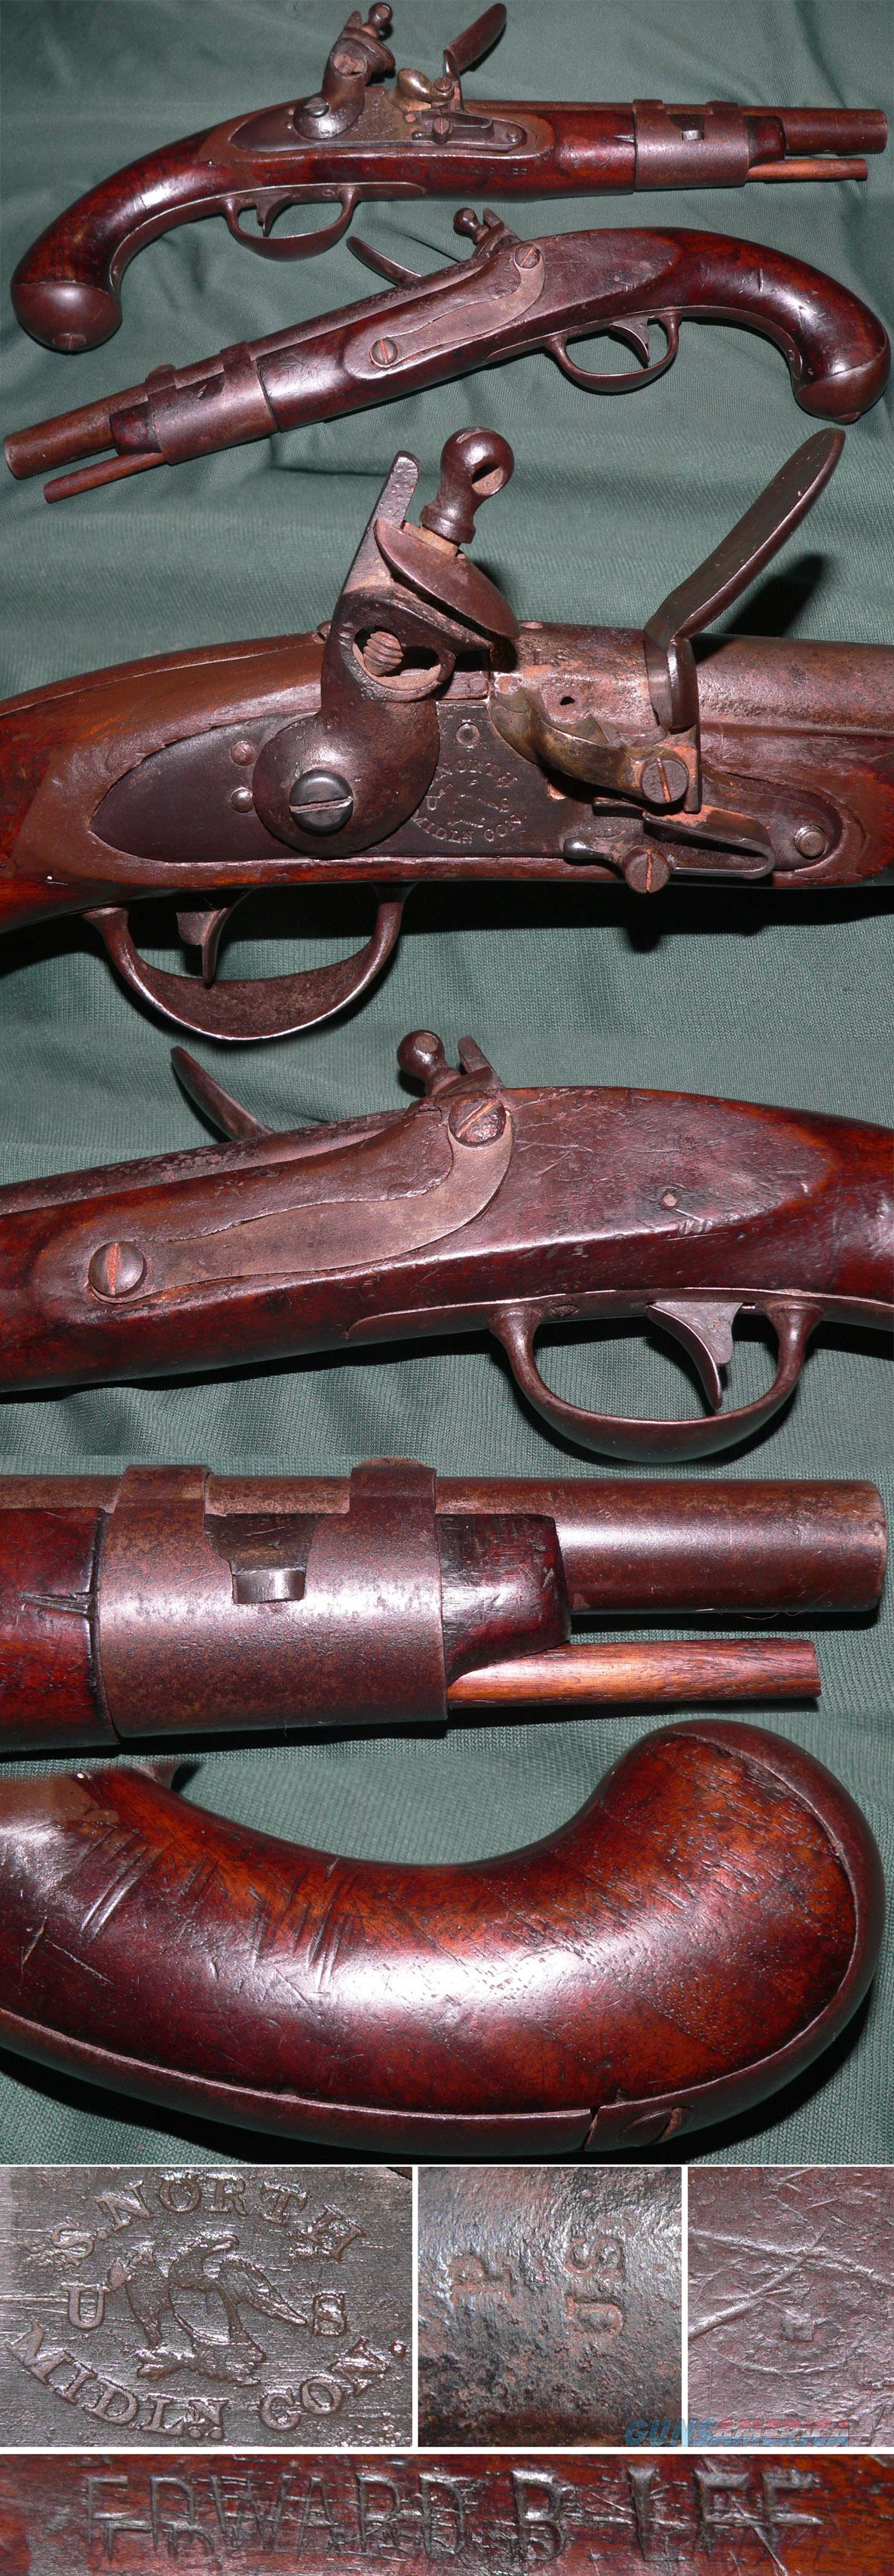 M1816 flintlock US martial pistol by Simeon North  Guns > Pistols > Muzzleloading Pre-1899 Pistols (flint)